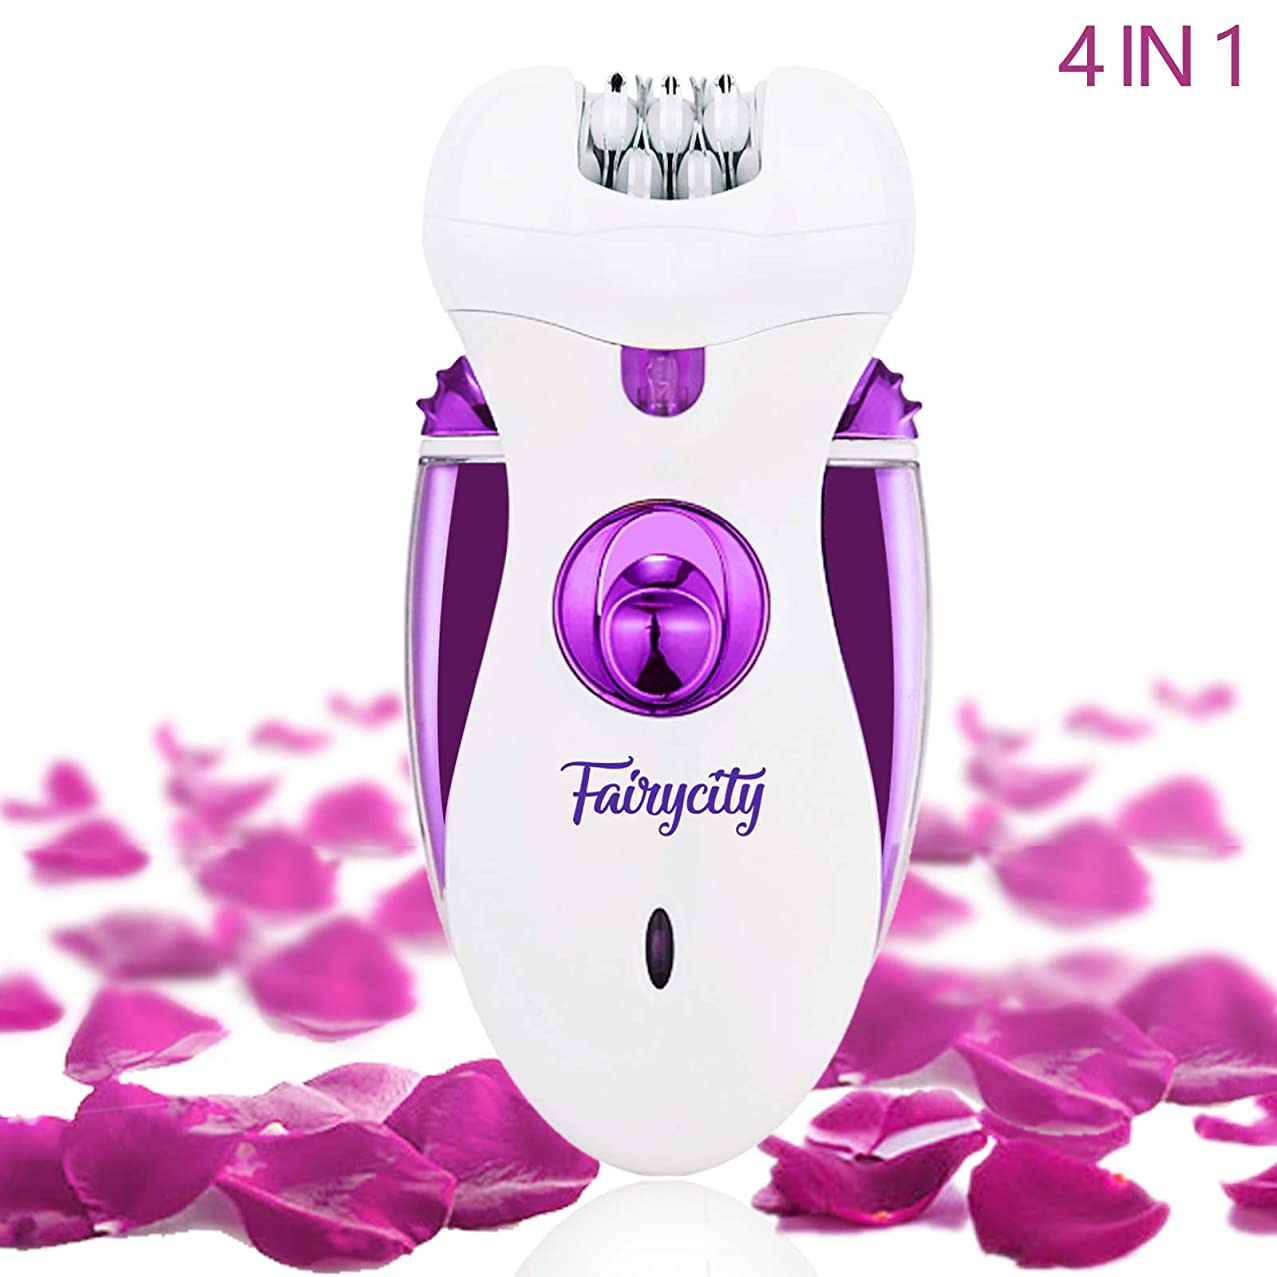 Epilator for Women Facial Hair Removal Face Shavers Feet Callus Remover Bikini Trimmer Electric Tweezer 4 in 1 Rechargeable Cordless Groomer for Body Legs Chin Underarms